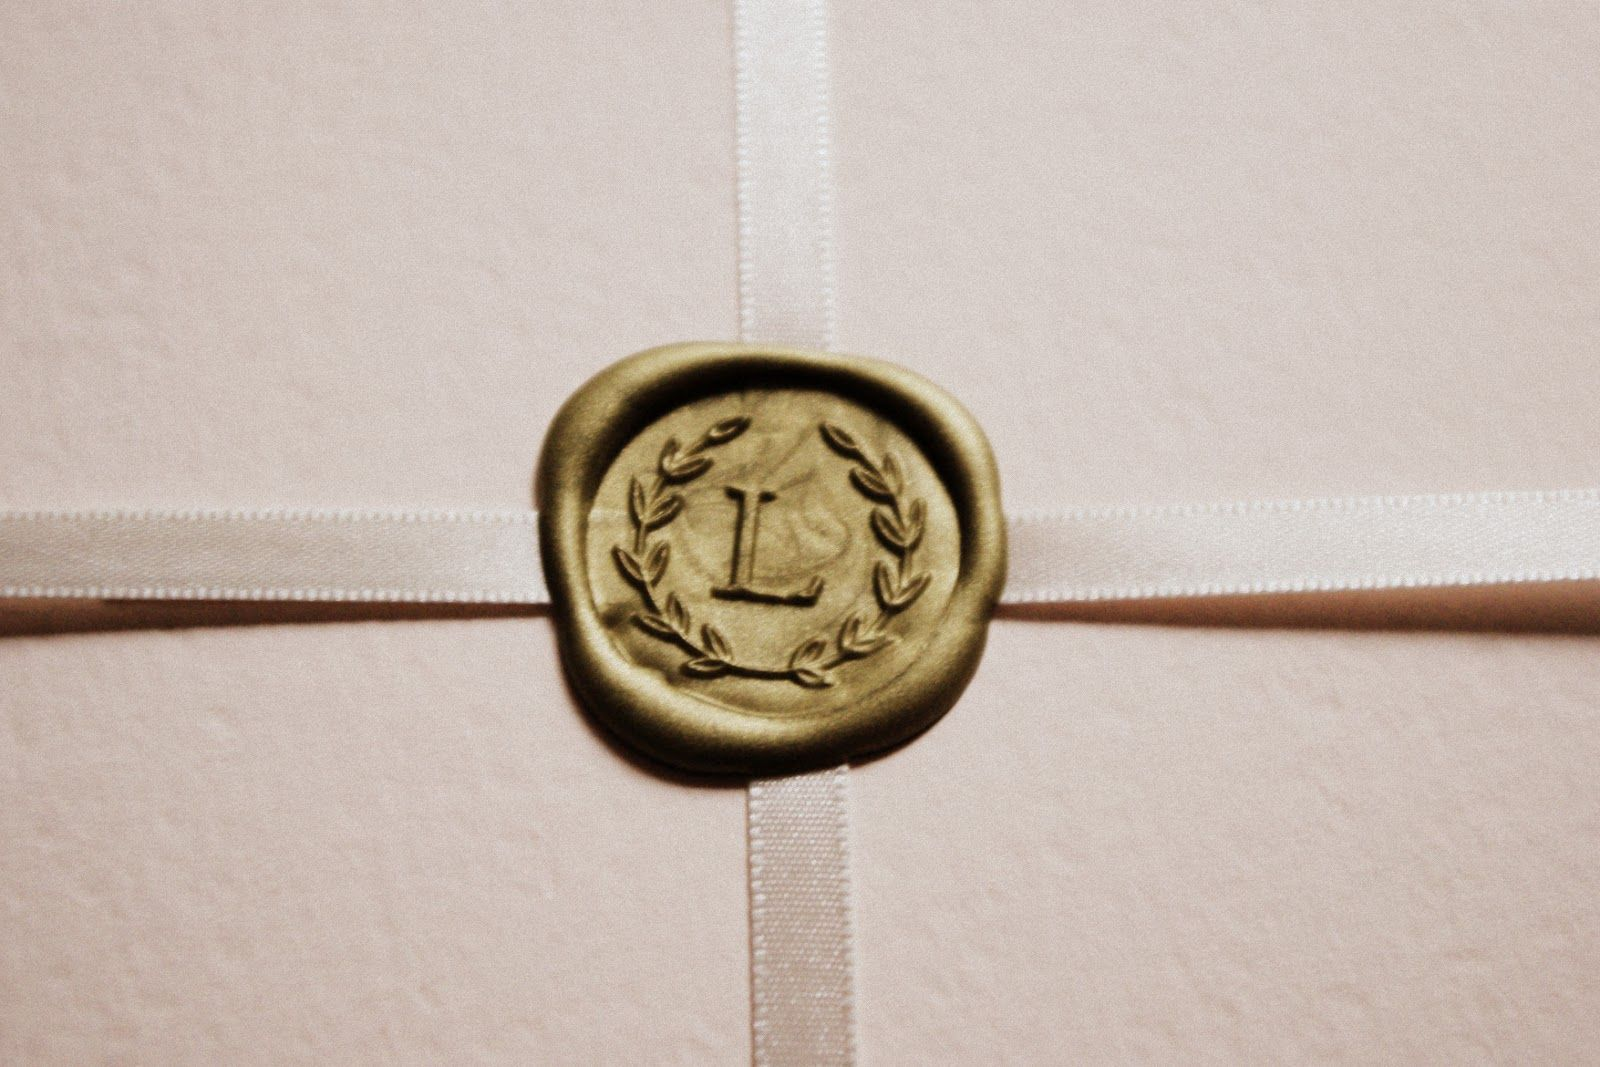 Wax Seals For Wedding Invitations: The Wax Seal On My Wedding Invitations, Out Just This Week